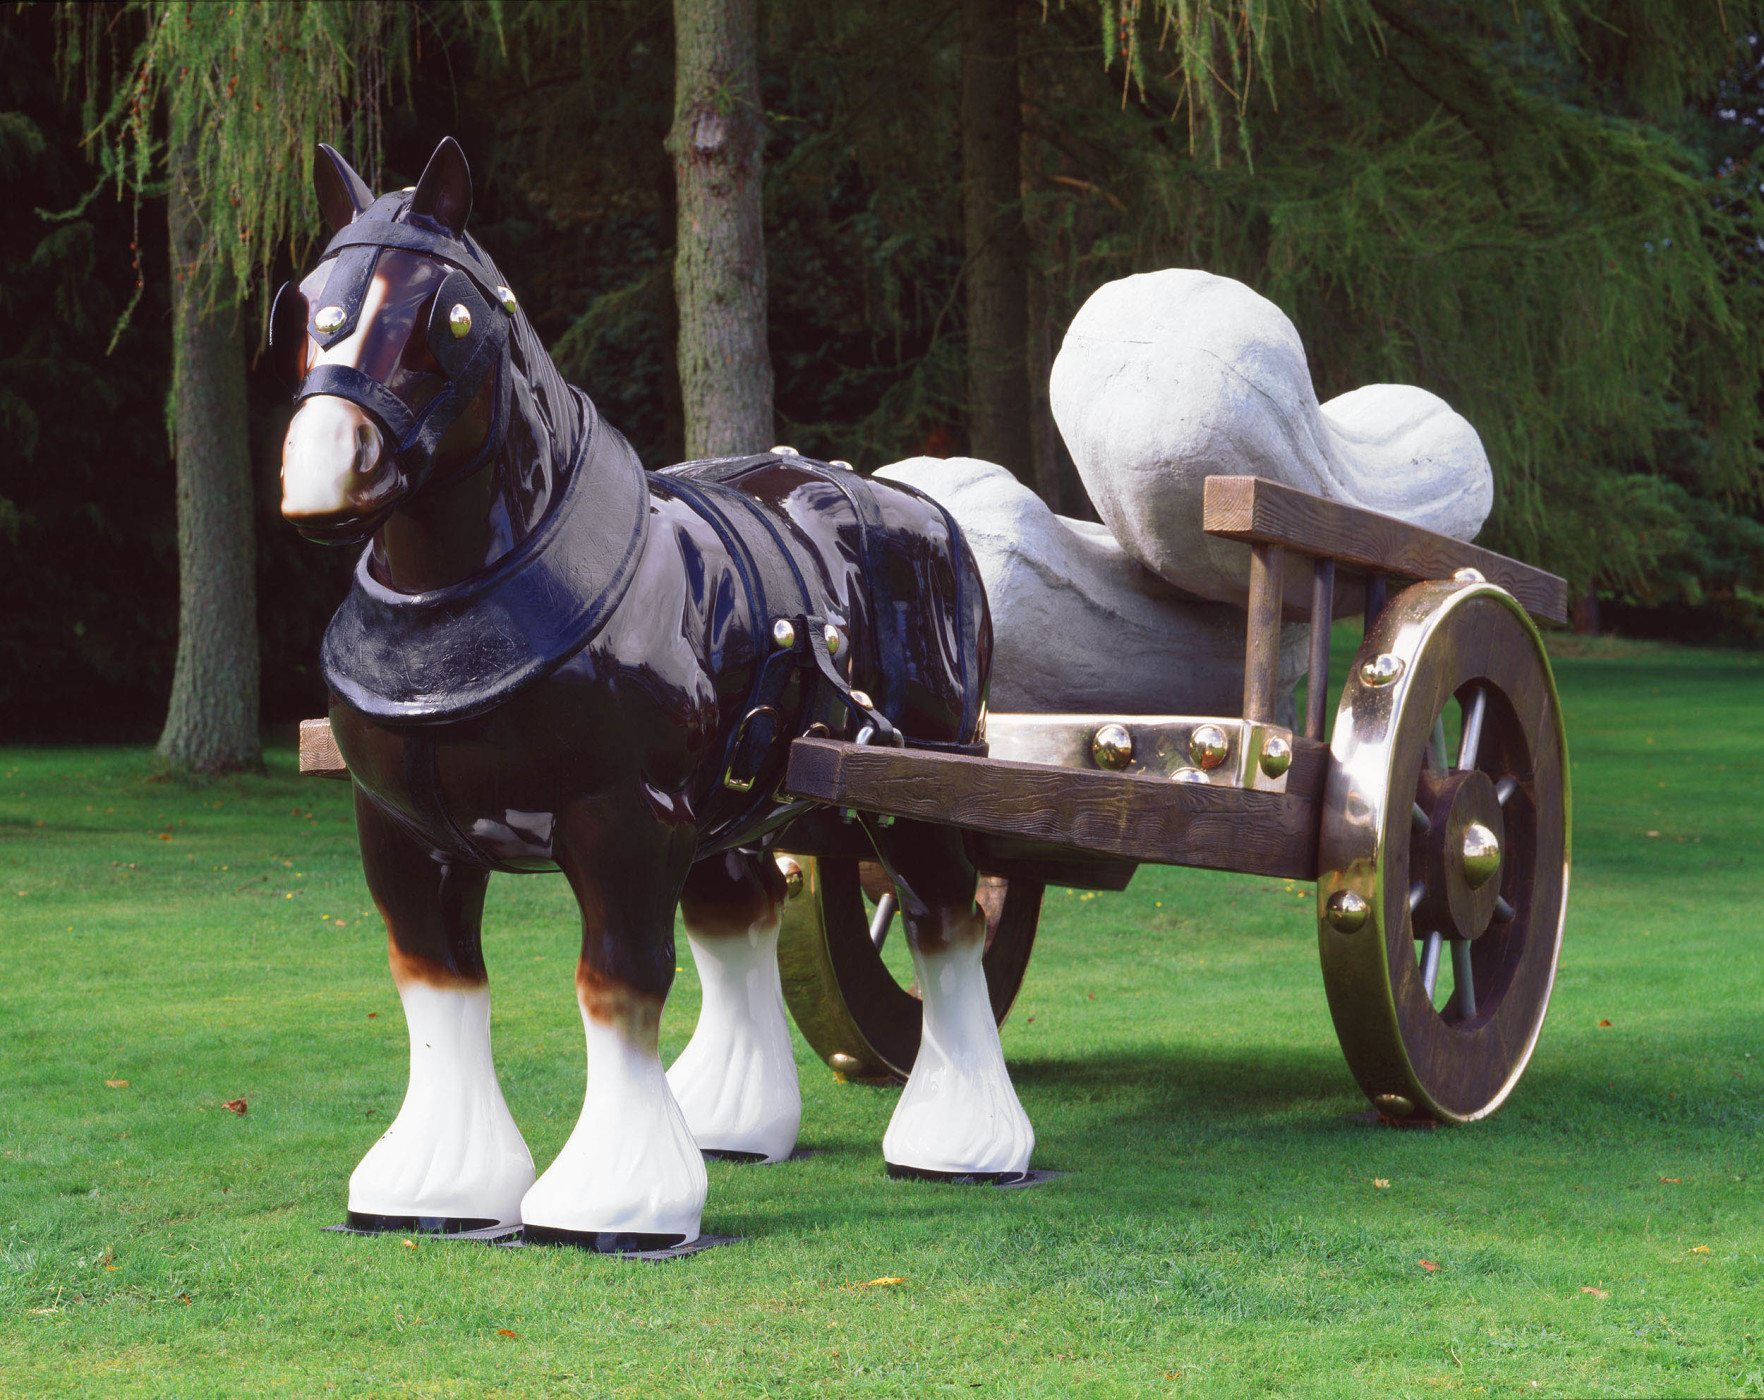 "<div class=""title""><em>Perceval</em>, 2006</div><div class=""medium"">bronze, concrete, paint</div><div class=""dimensions"">horse: 230 x 140 x 240 cm / 91 x 55 x 94 in<br />cart: 140 x 180 x 250 cm / 55 x 71 x 98 in<br />marrows (each): 65 x 65 x 200 cm / 26 x 26 x 79 in<br />installed measurements: H: 230 cm x W: 183 cm x L: 548 cm (H: 90 1/2 x W: 72 x L: 215 3/4 in)</div>"